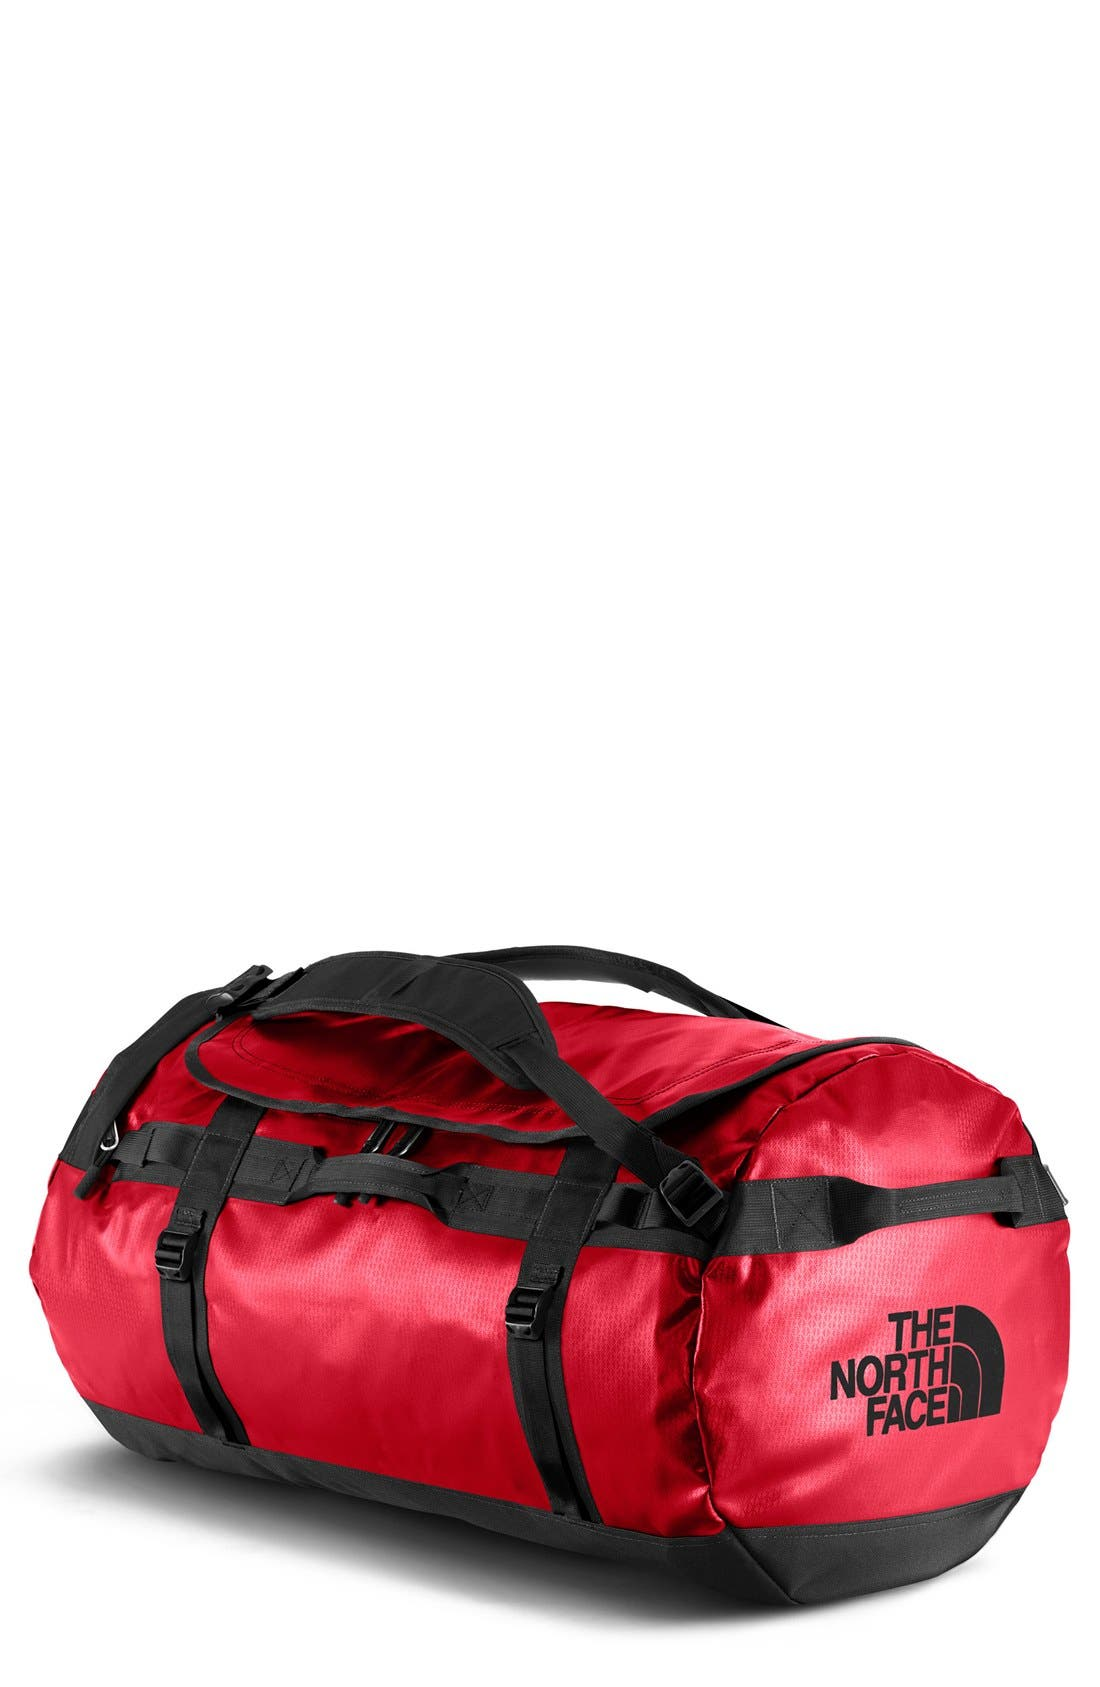 The North Face 'Base Camp - Large' Duffel Bag